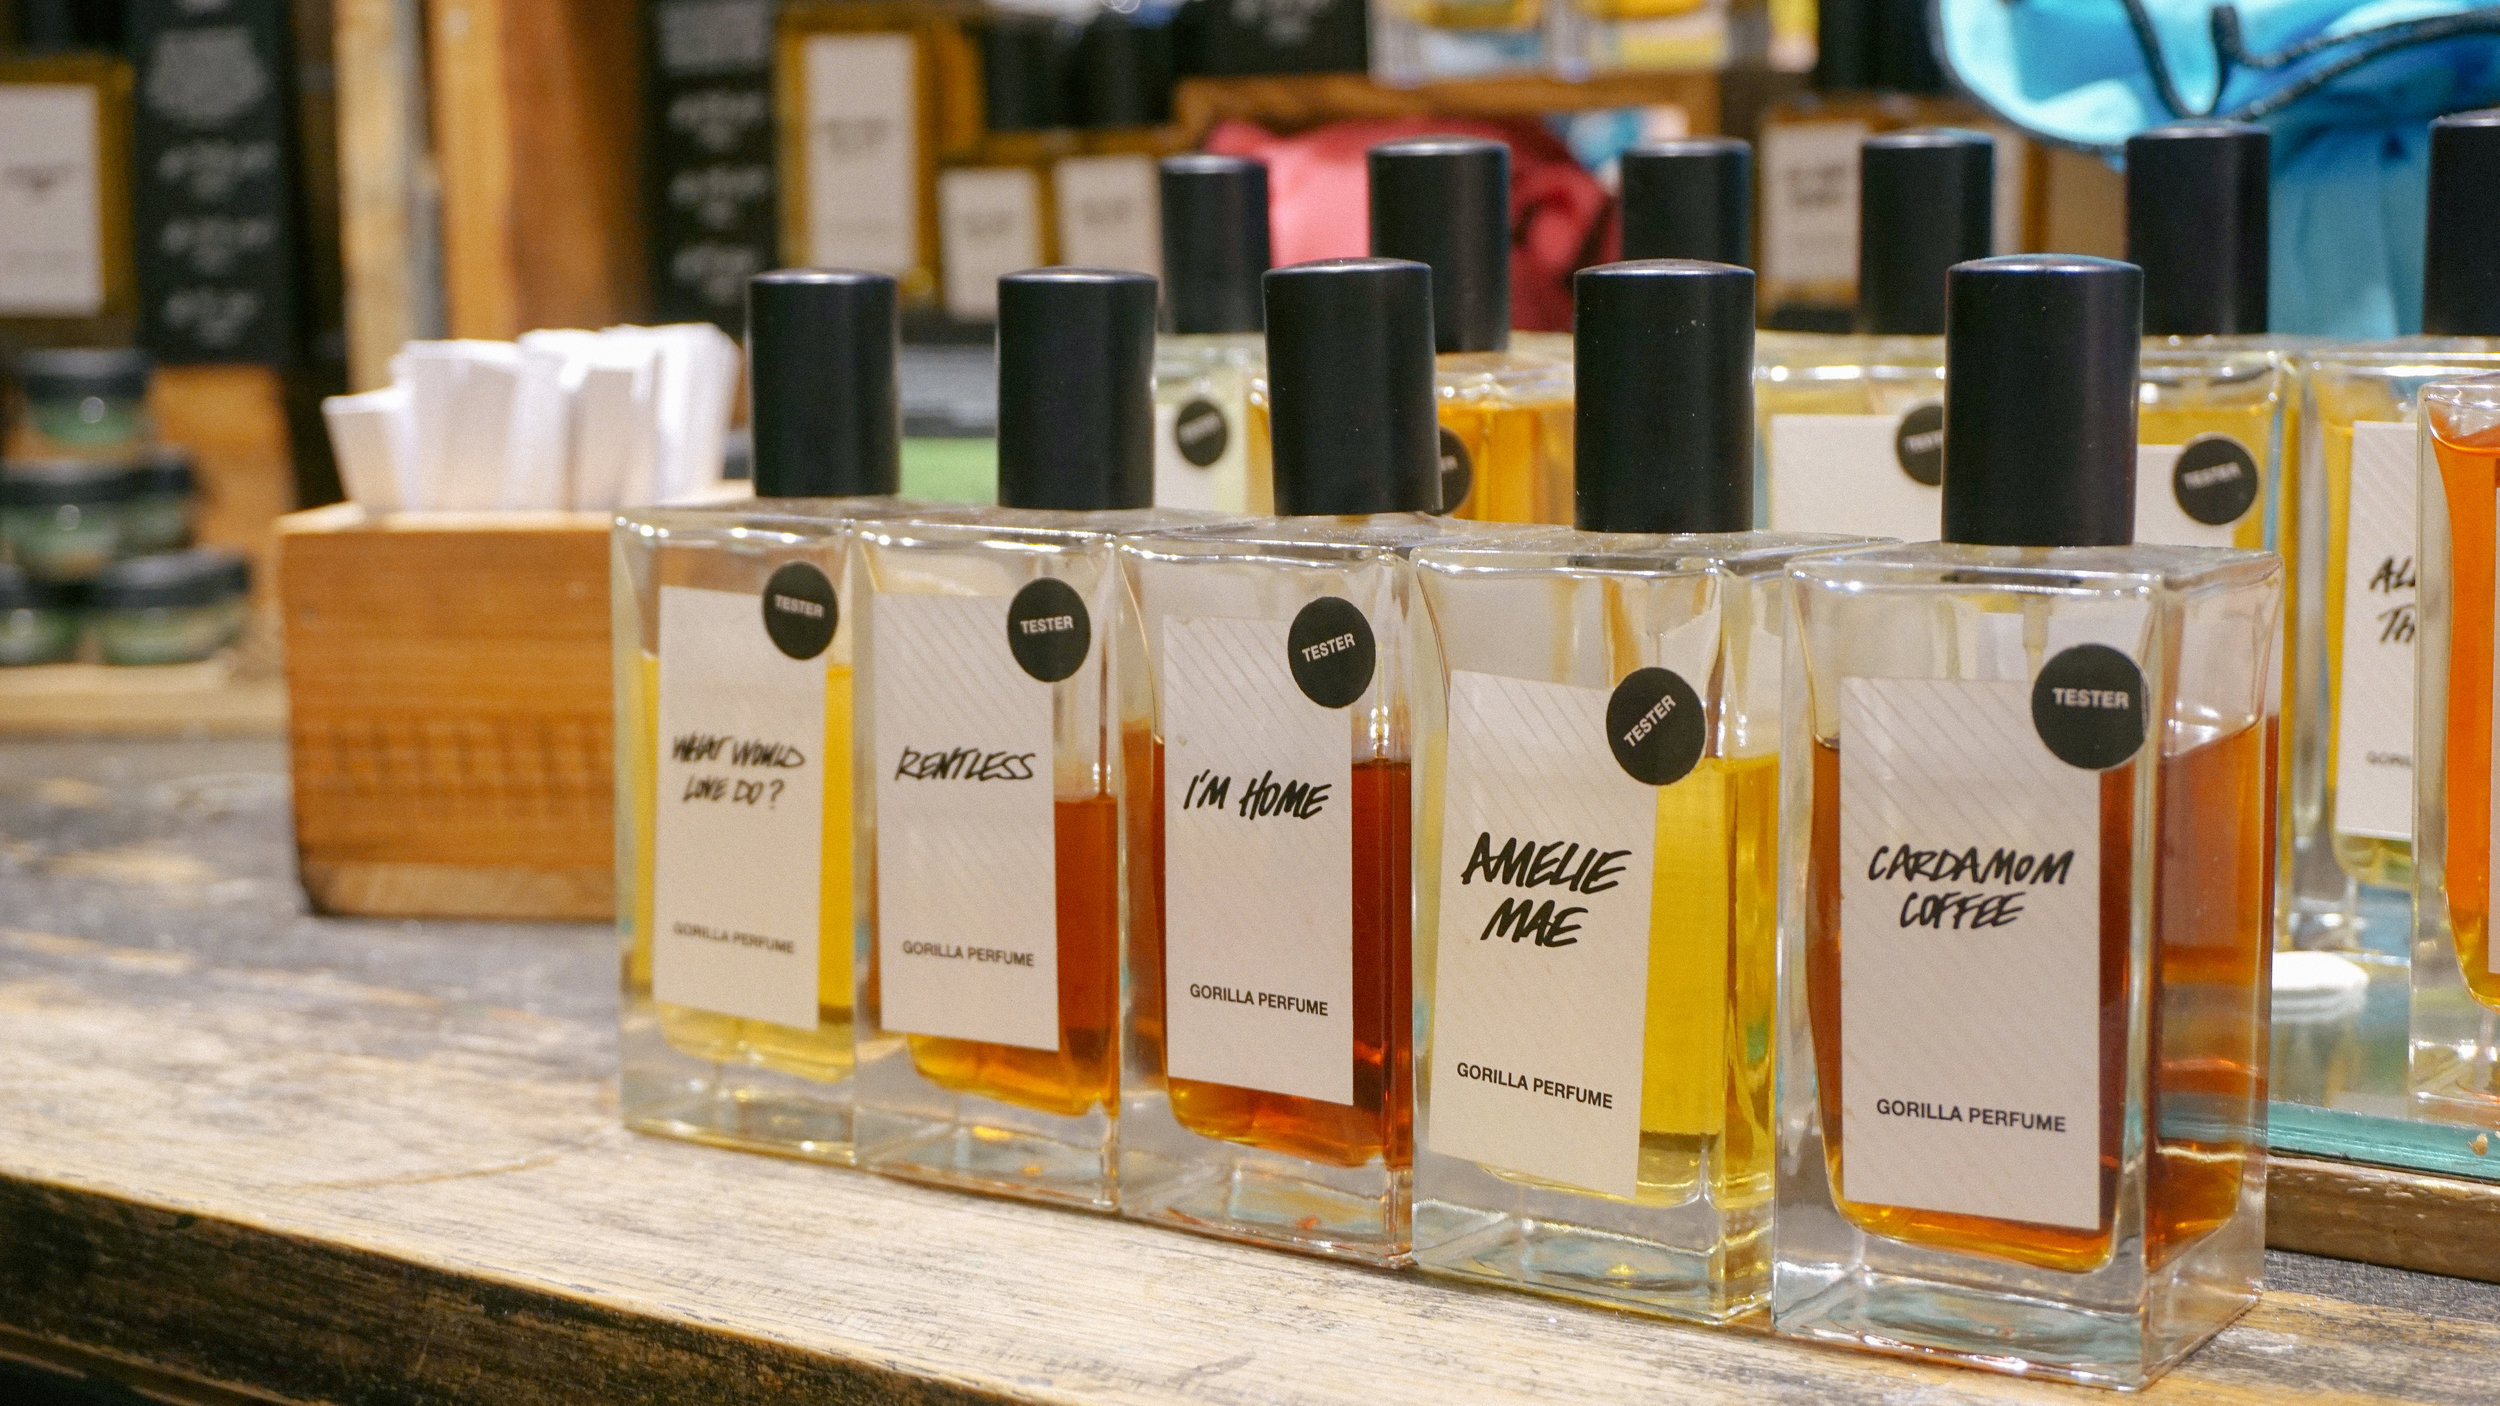 Gorilla Perfumes Volume IV (from left to right):  What Would Love Do? ,  Rentless ,  I'm Home ,  Amelie Mae ,  Cardamom Coffee